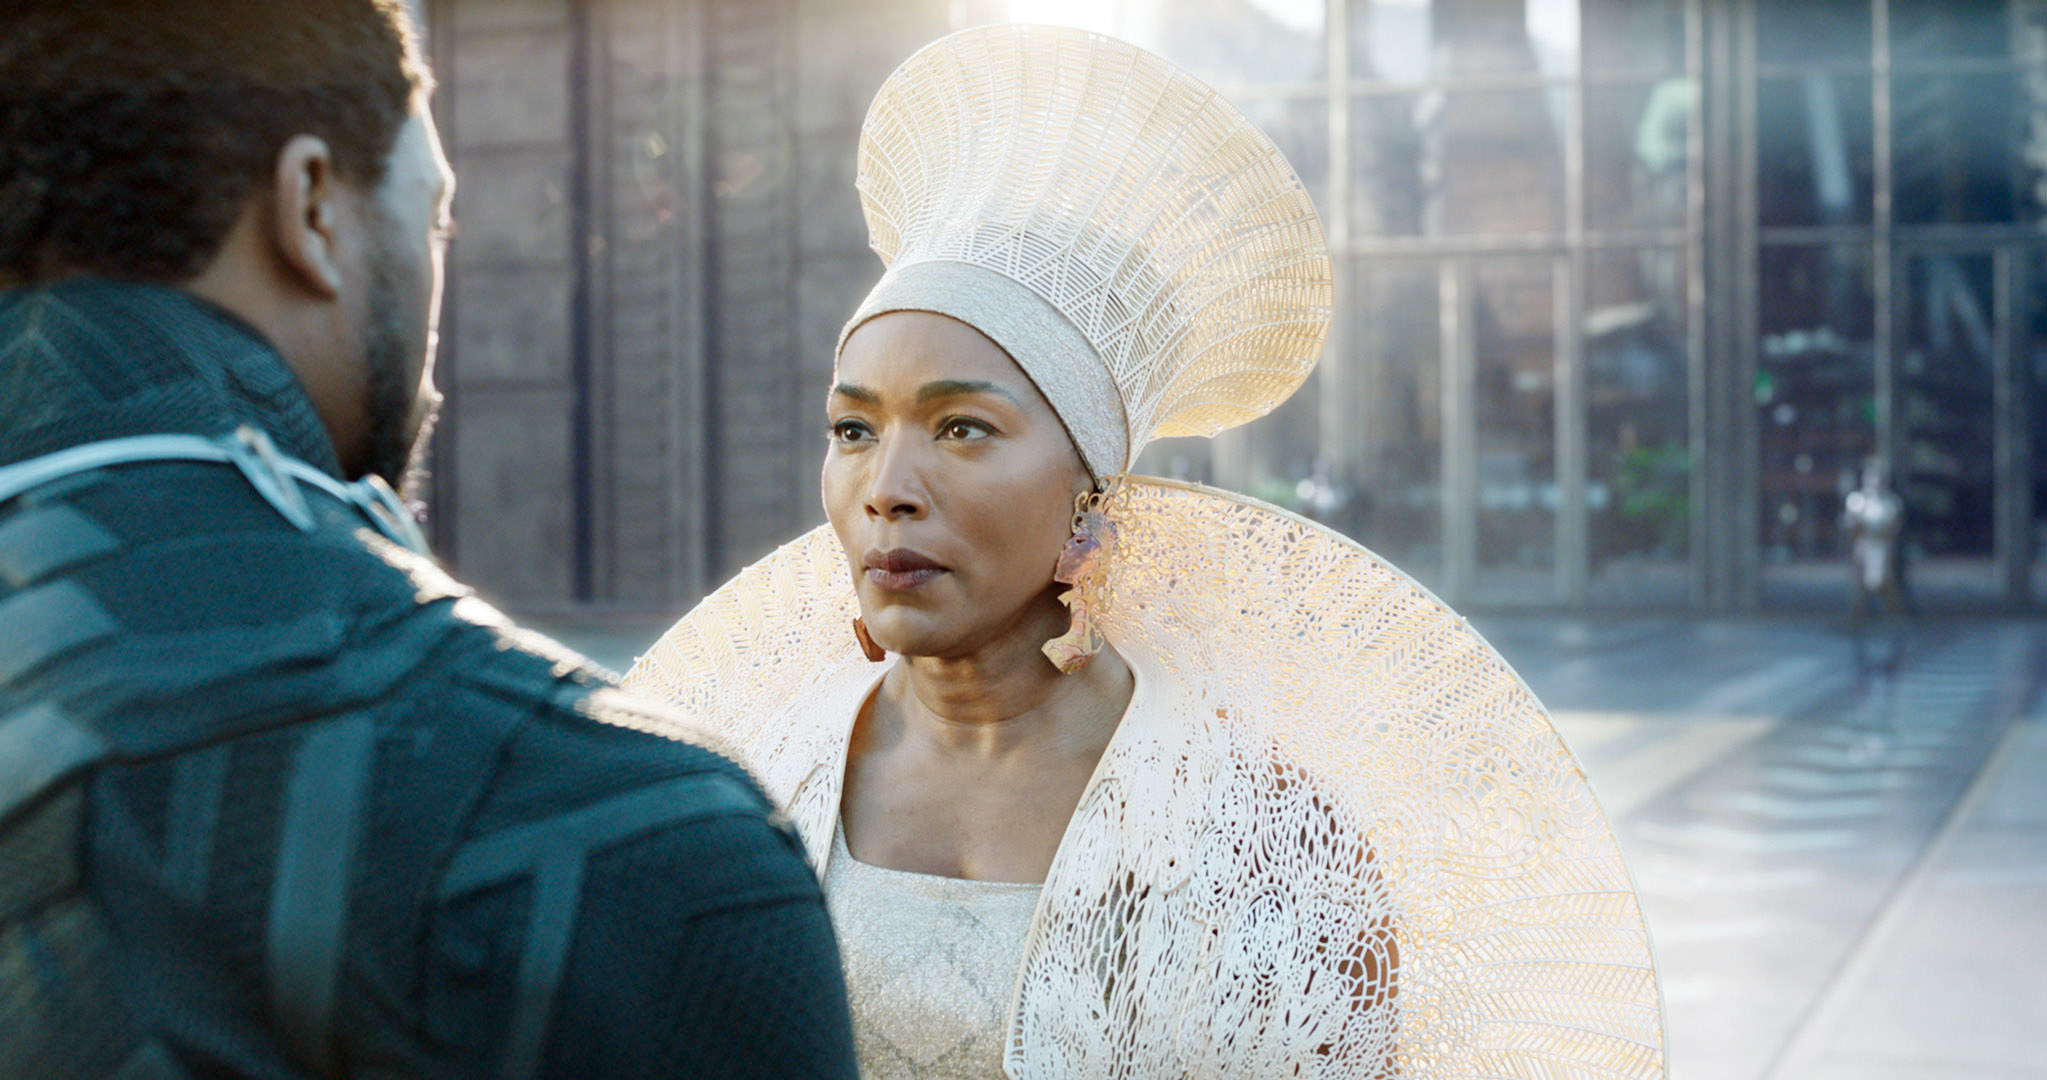 Angela Bassett as Queen Mother speaking to T'Challa